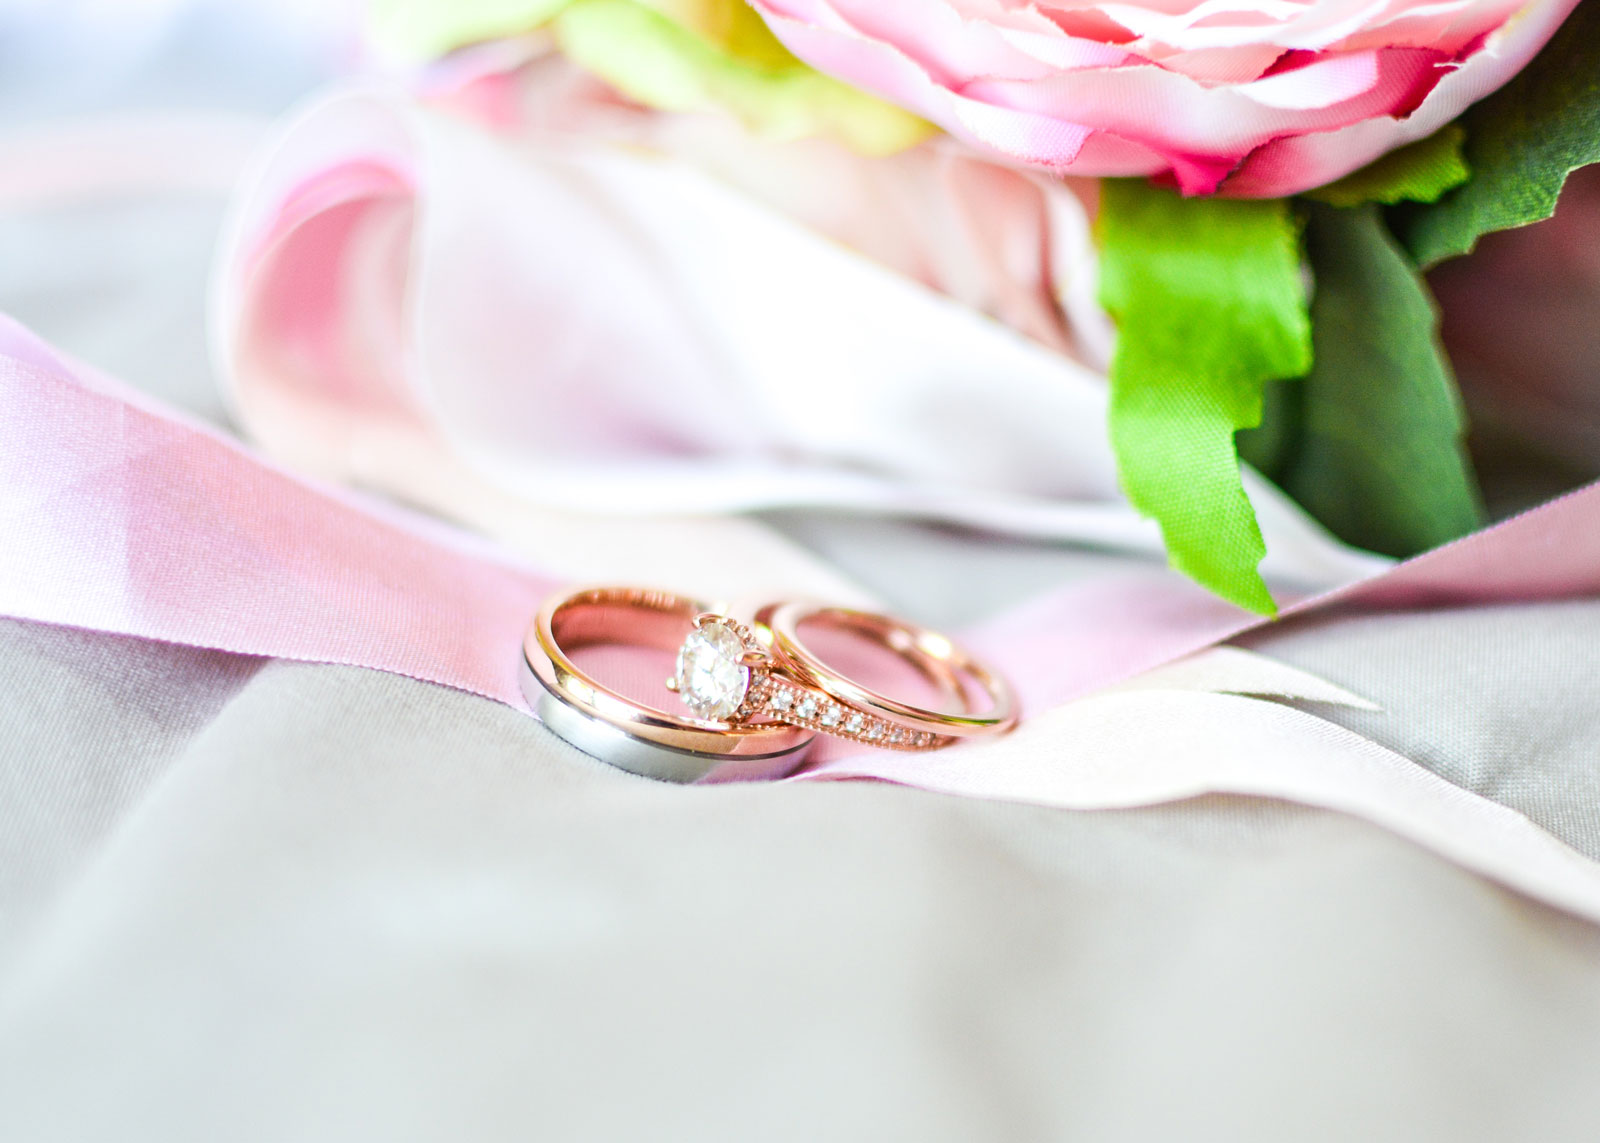 Rose Gold Rings | Is Rose Gold Jewelry Ever Really Made From Gold?